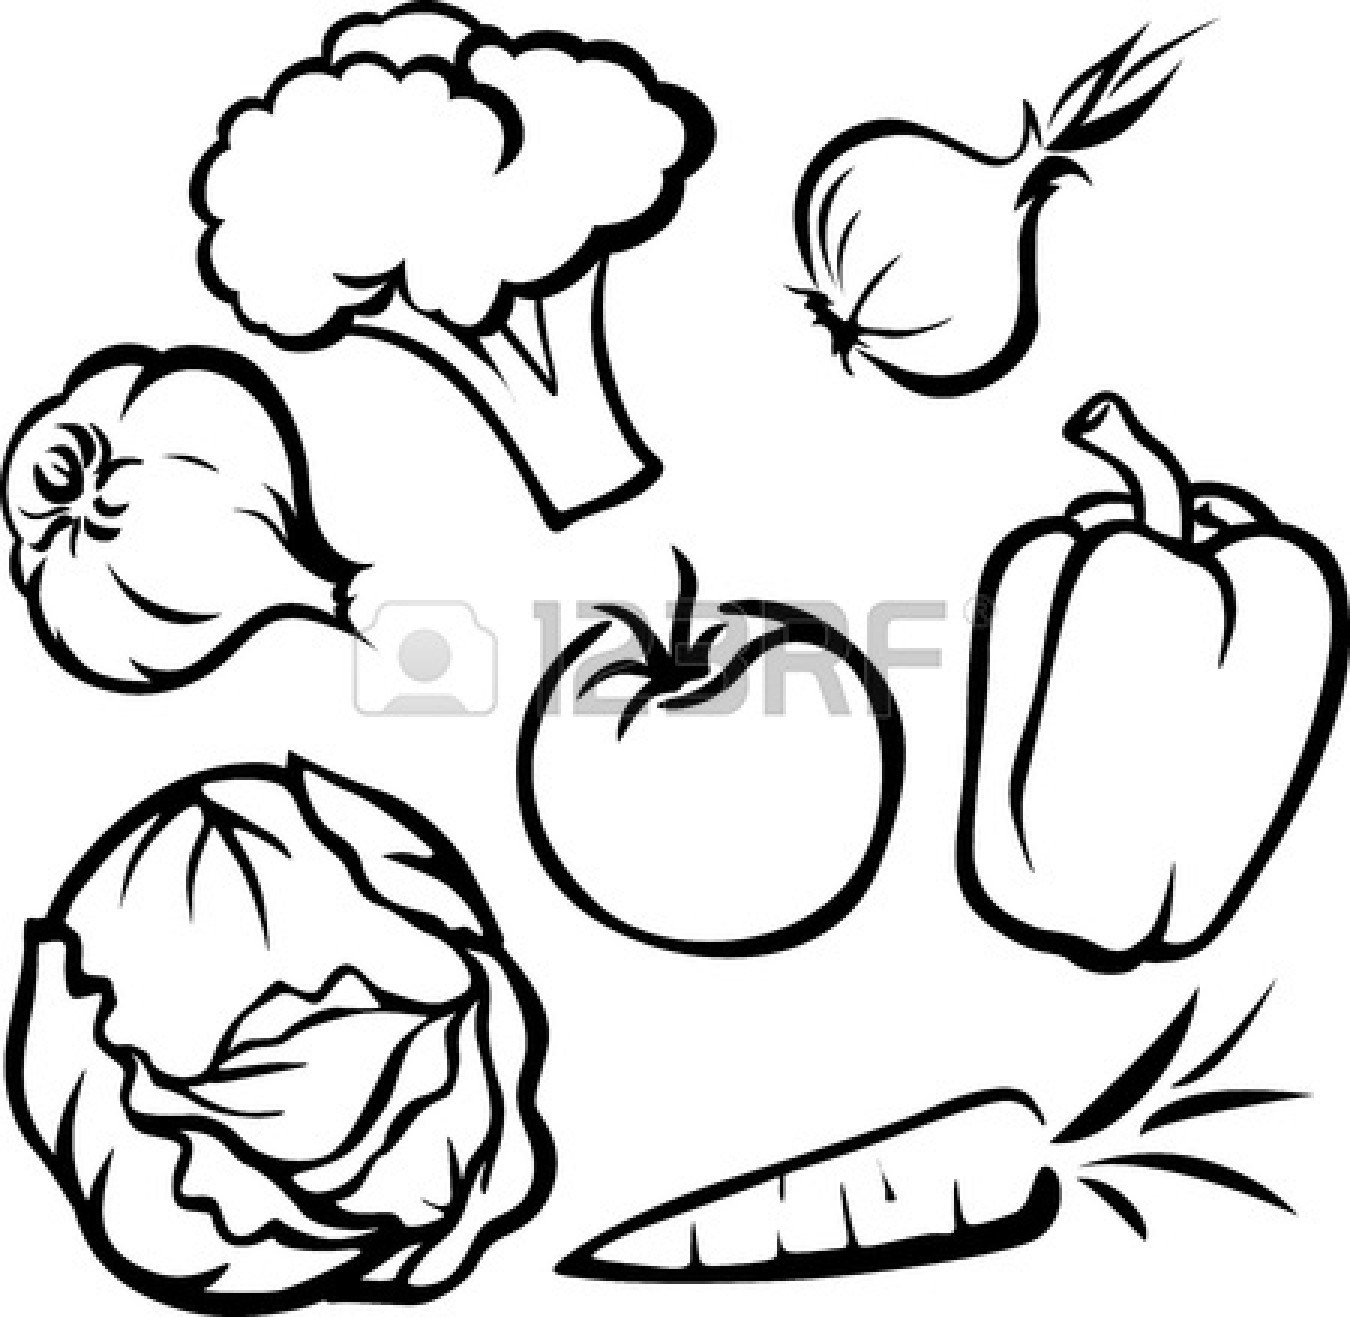 Fruits And Vegetables Drawing Black And White at PaintingValley.com.